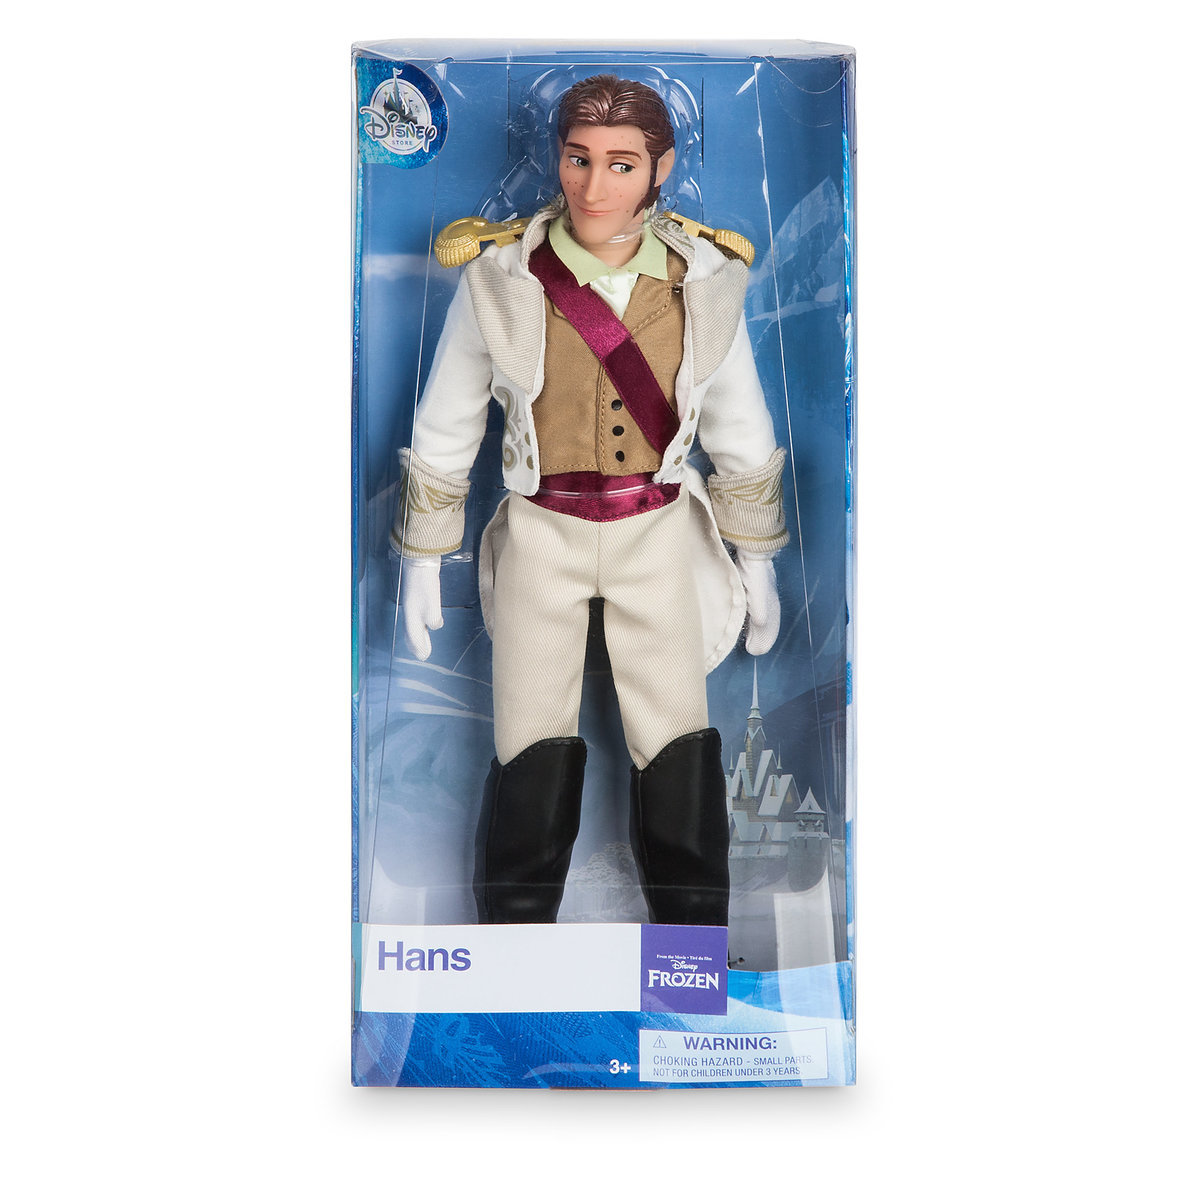 Disney Frozen Classic Hans Doll Genuine Disney